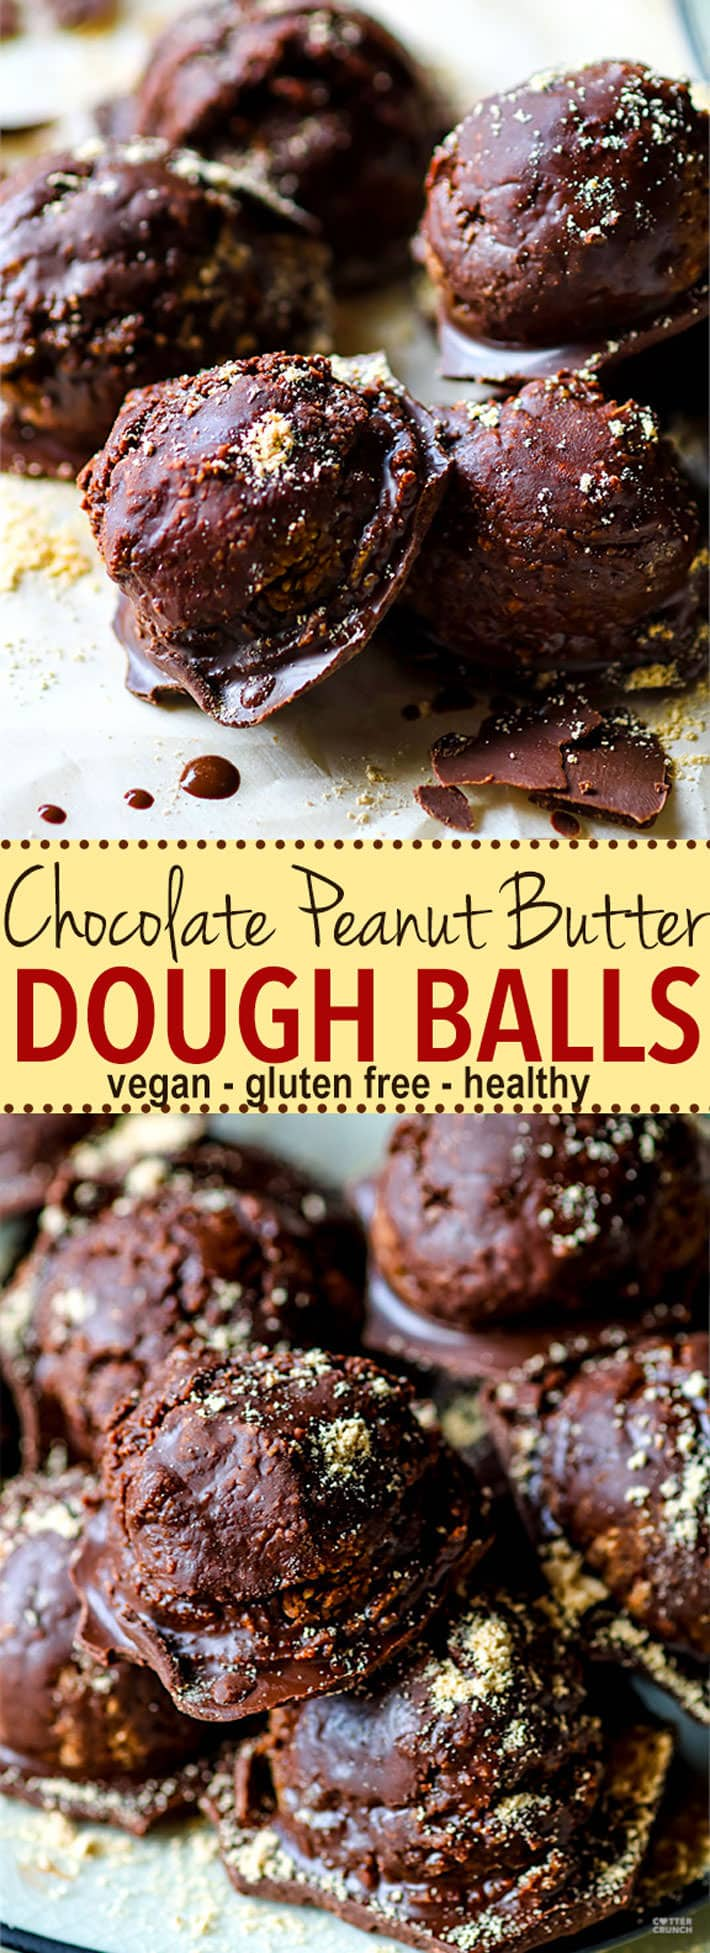 Vegan Chocolate Peanut Butter Dough Balls with hidden Veggies. Gluten Free Peanut Butter dough coated in a dark chocolate magic shell and amazingly delicious! No one will ever know they are good for you, packed full of fiber, veggies, and natural sugars! Easy to make, ready in under 45 minutes, and loved by ALL! @cottercrunch